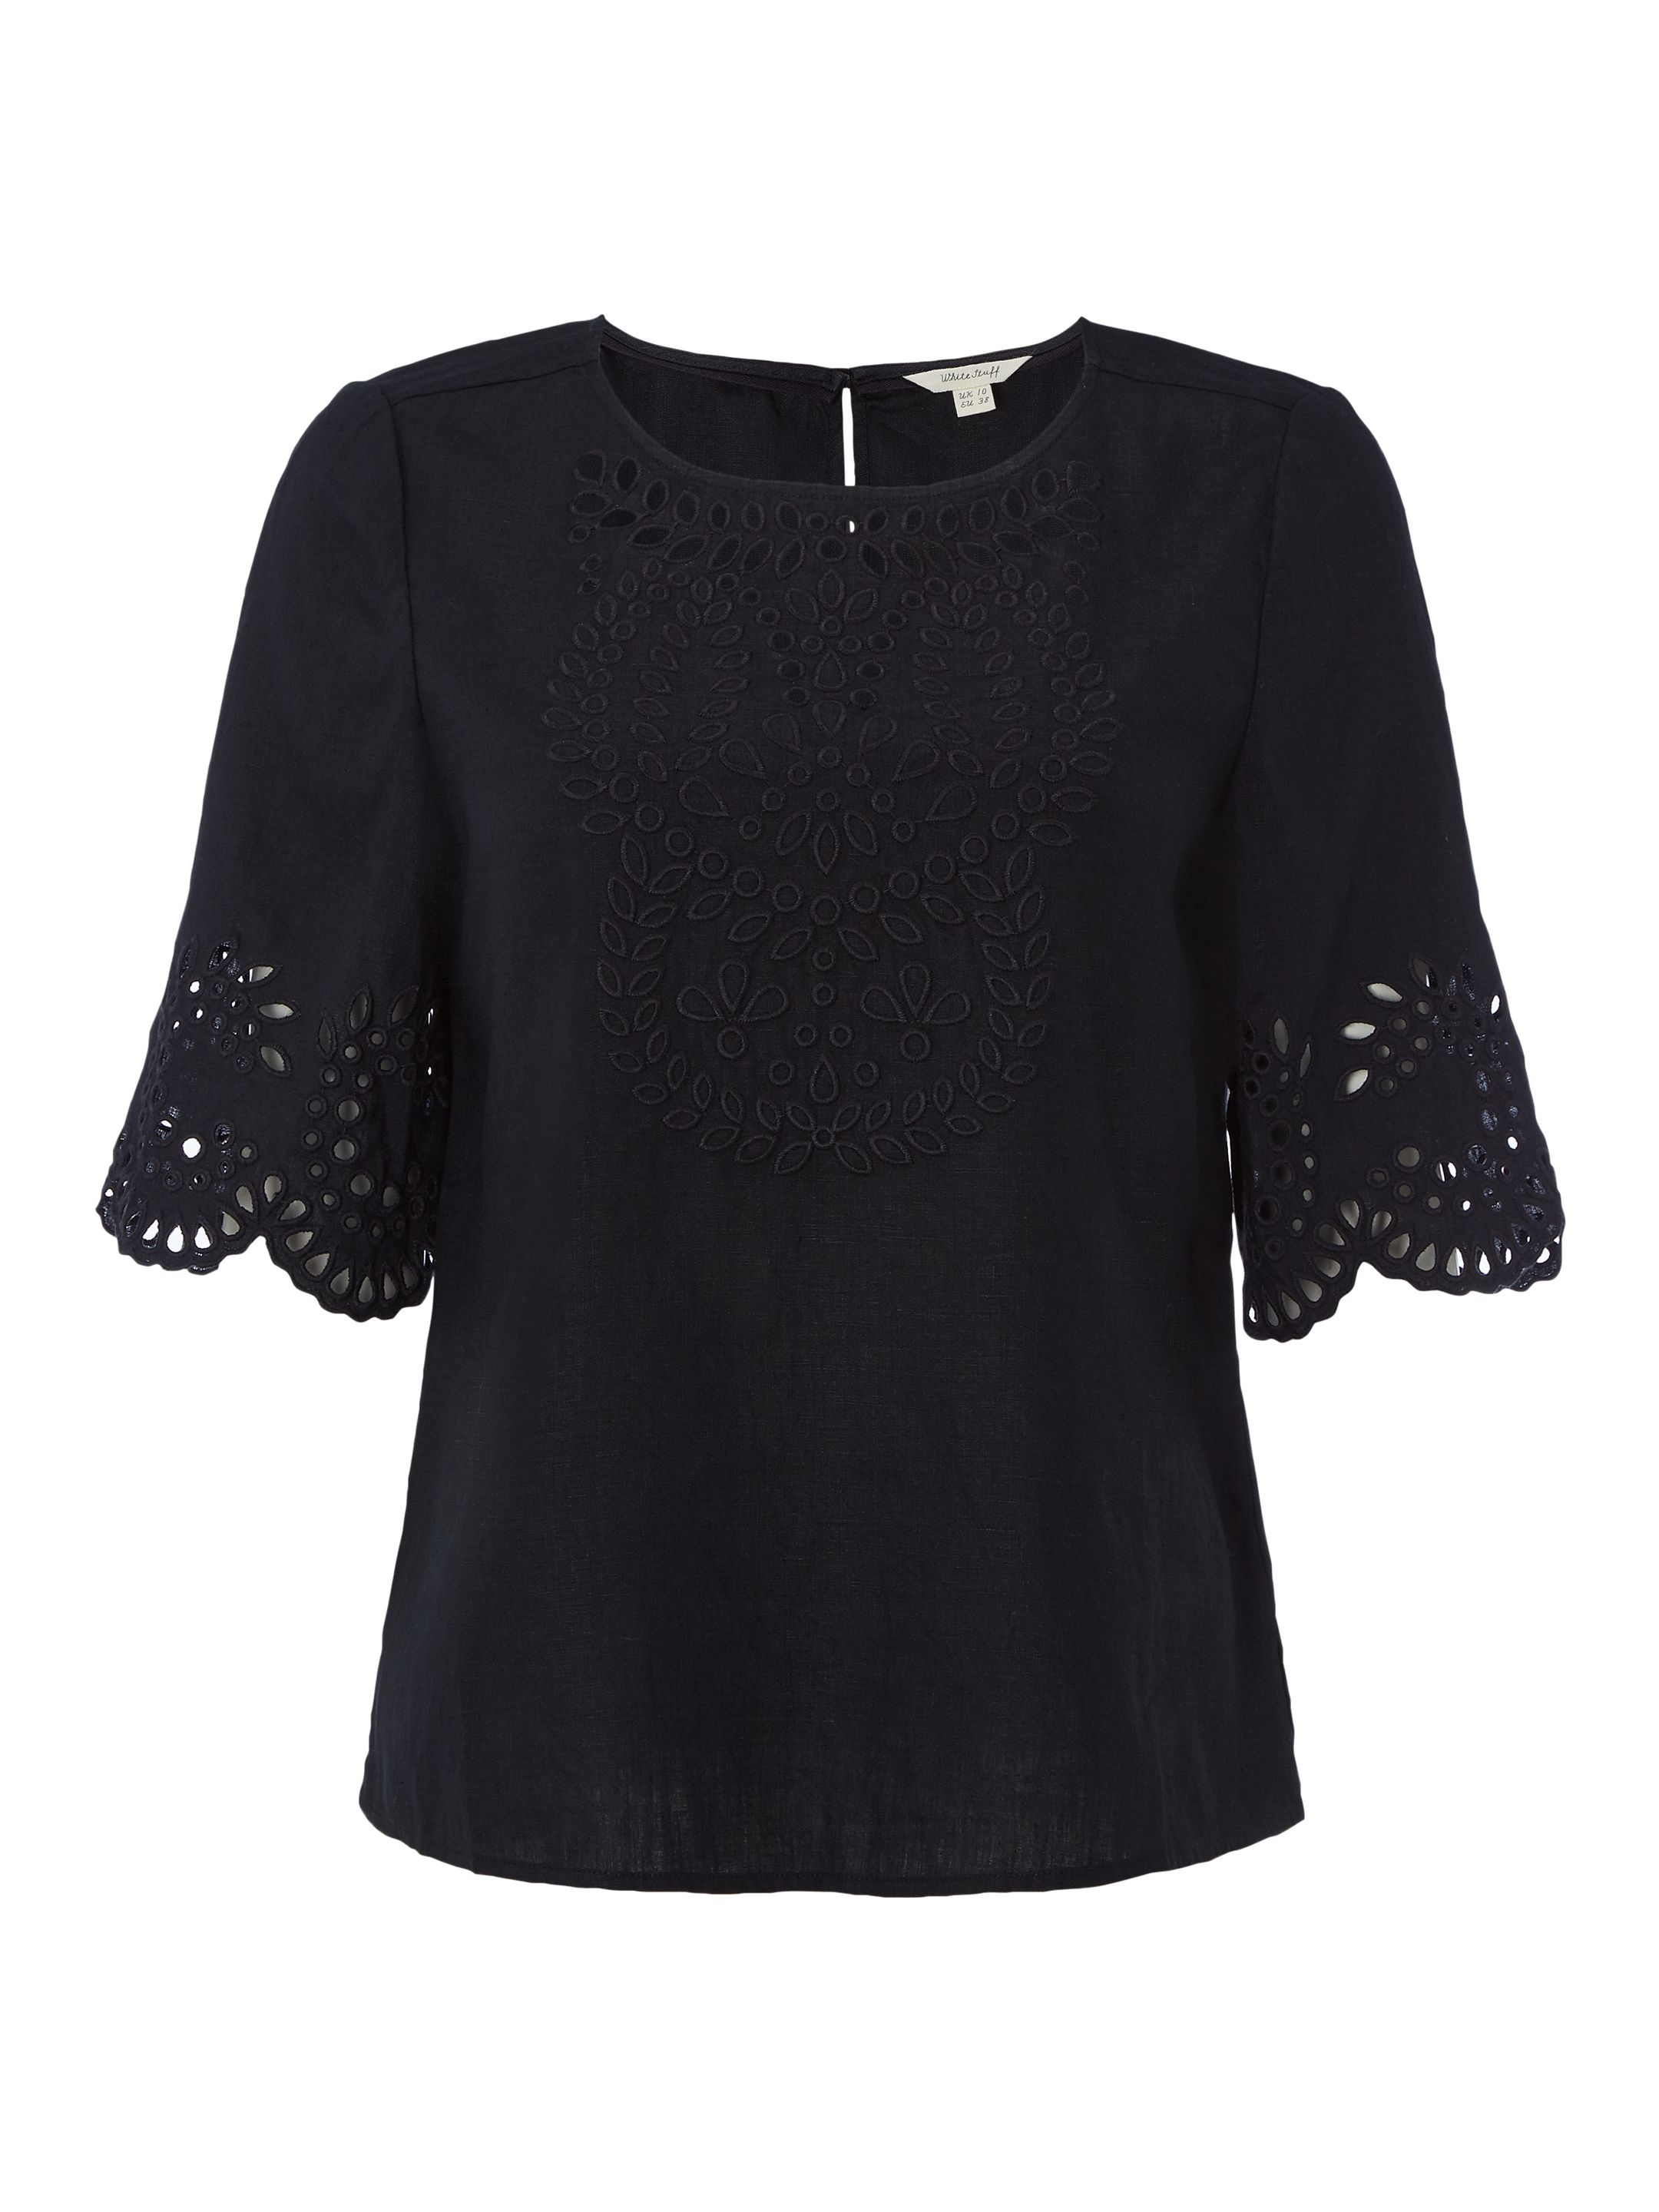 White Stuff Cutwork Karala Top, Black